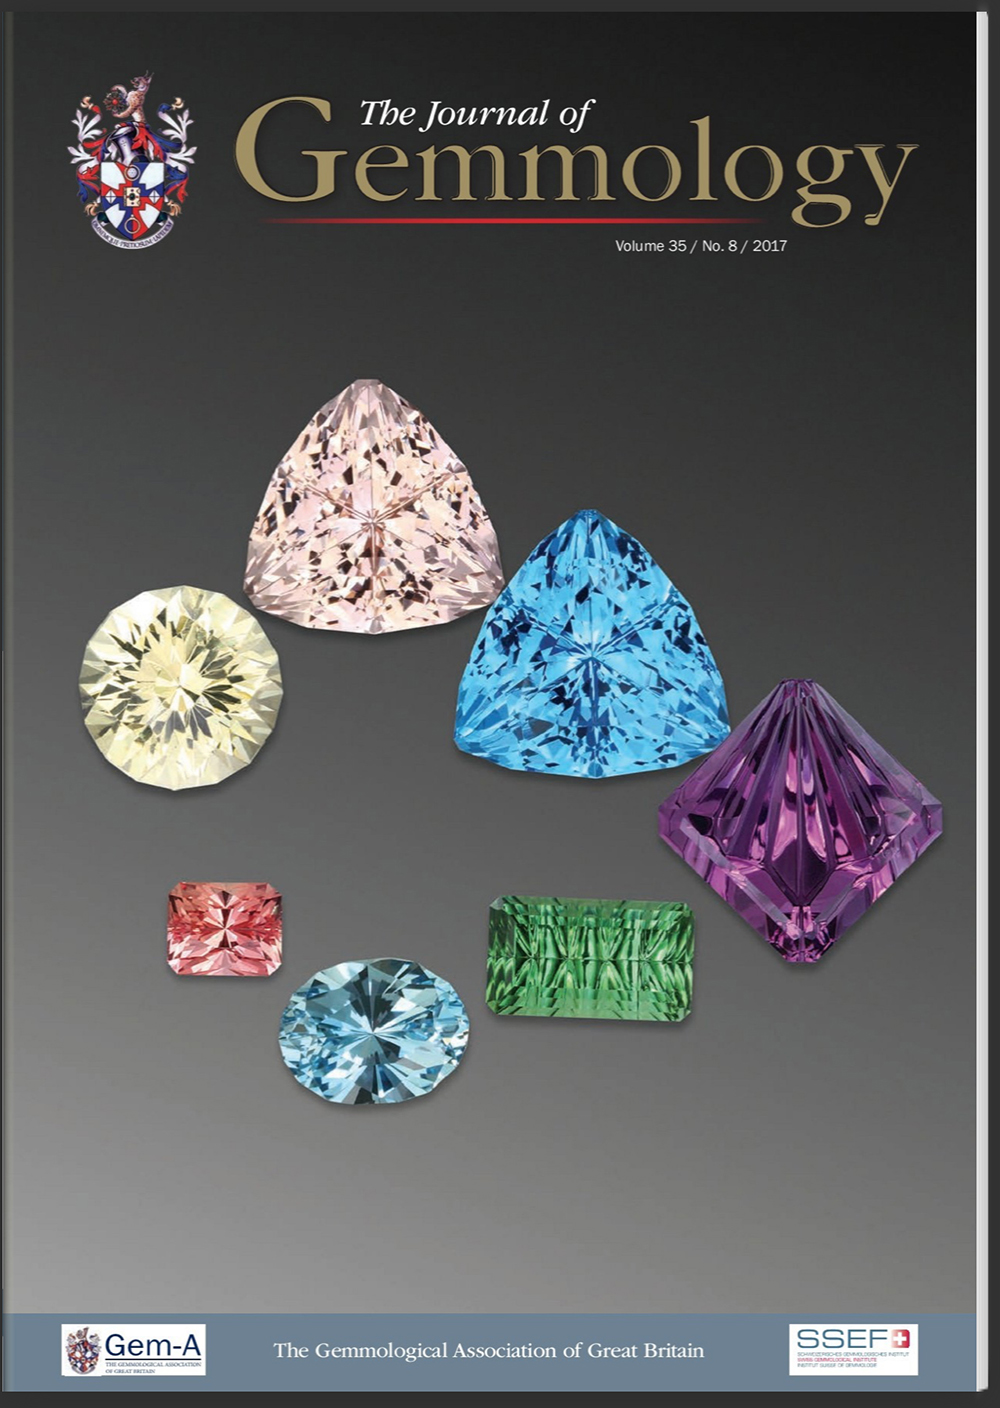 Green Garnet from Ethiopia in the Journal of Gemmology